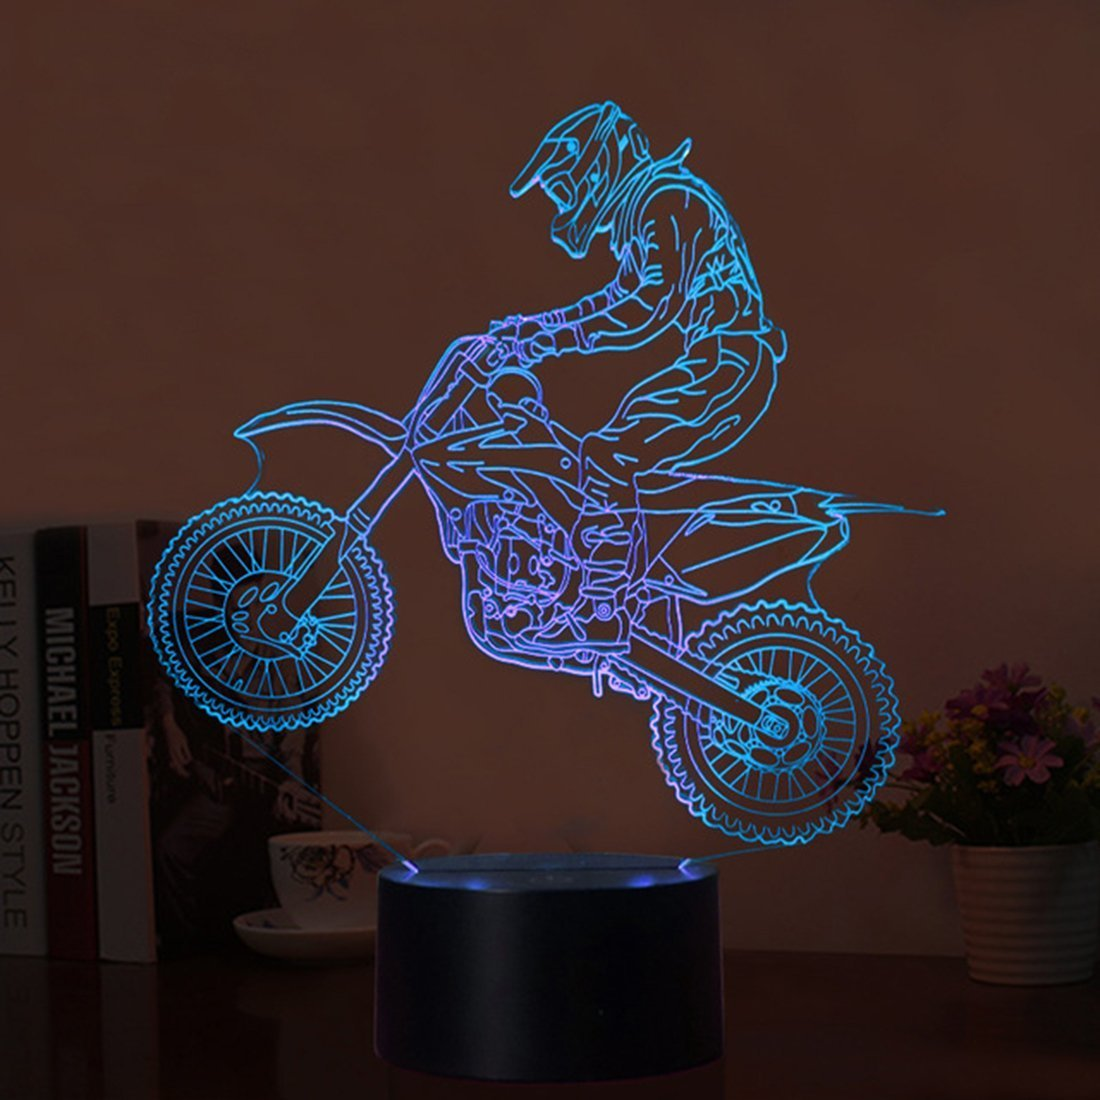 3D Led Illusion Table Lamp 7 Colors Change Night Light for Bedroom Home Decoration Wedding Birthday Christmas and Valentine Gift Artistic and Romantic Atmosphere Space Shuttle